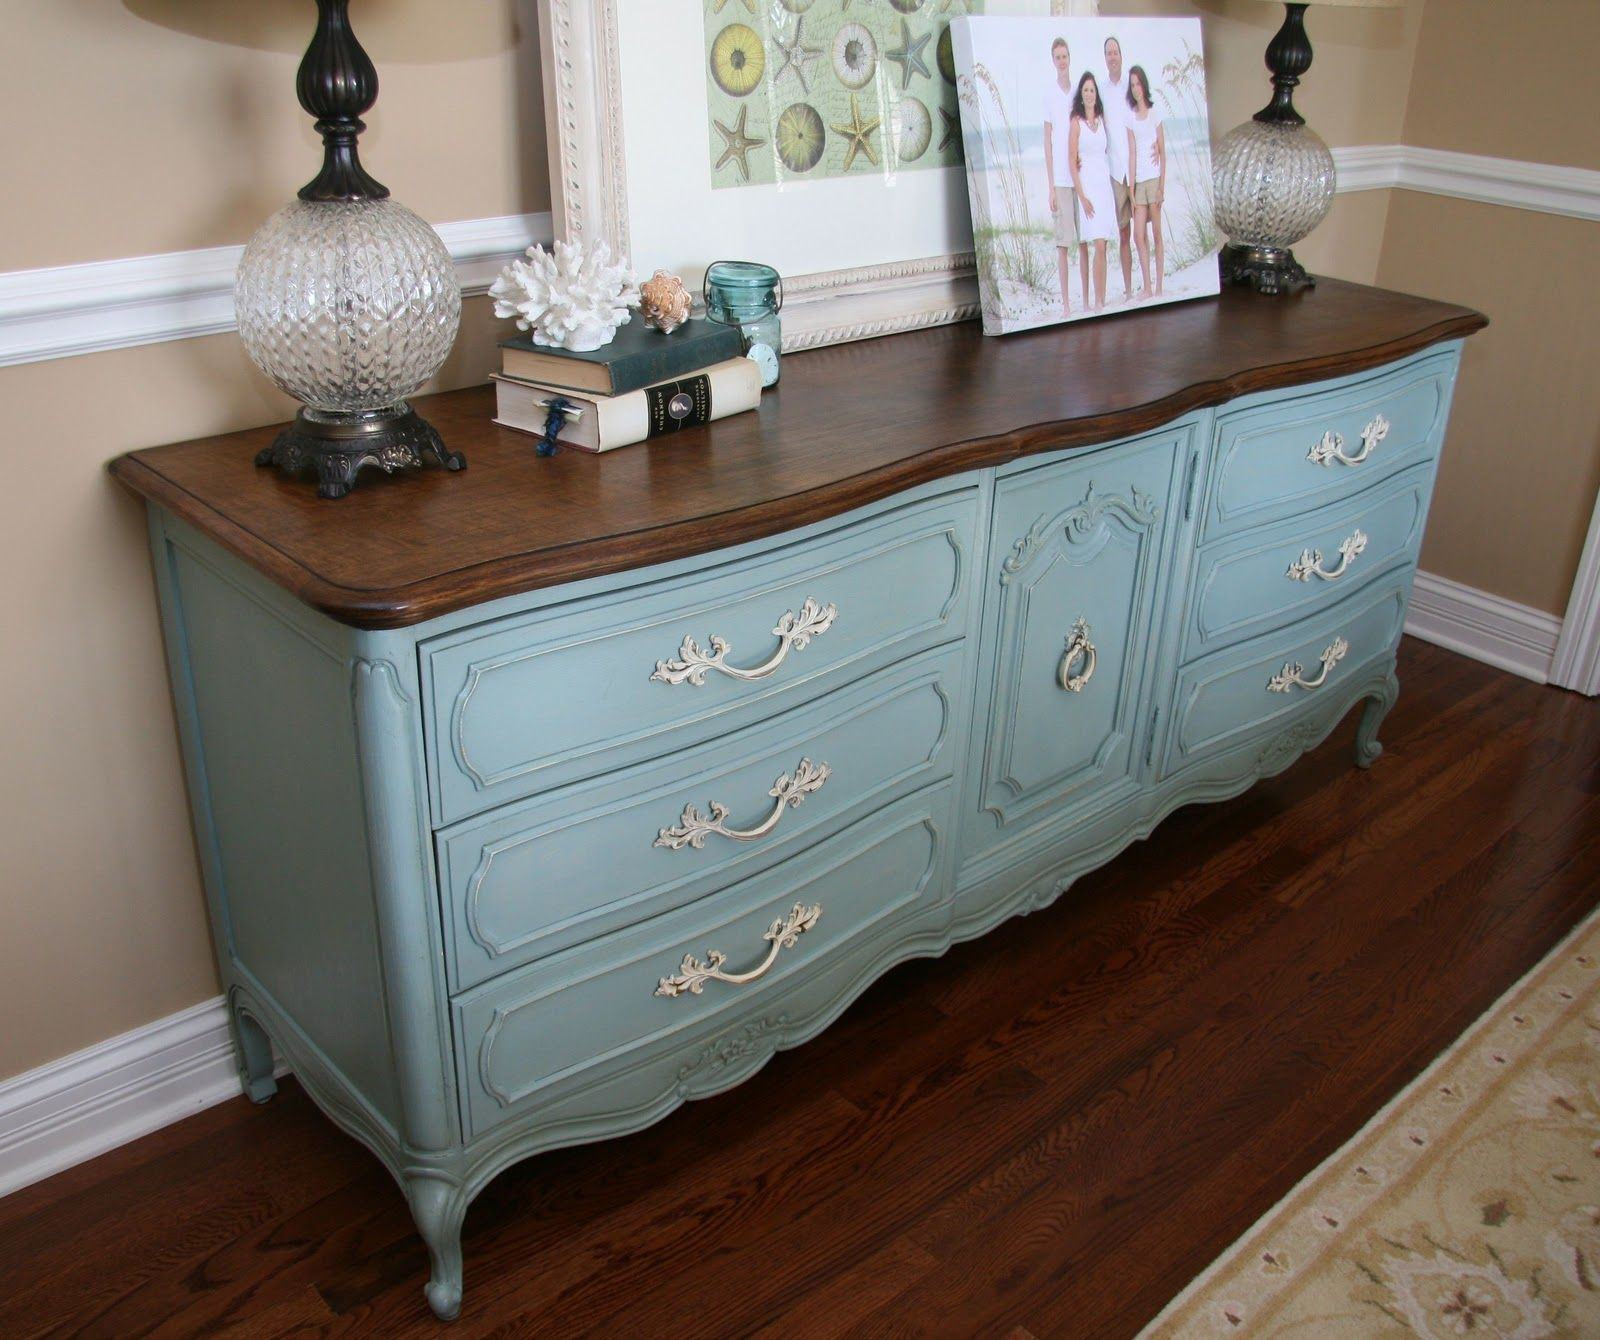 Annie Sloan Duck Egg Blue - top stained and waxed in A.S. dark wax ...